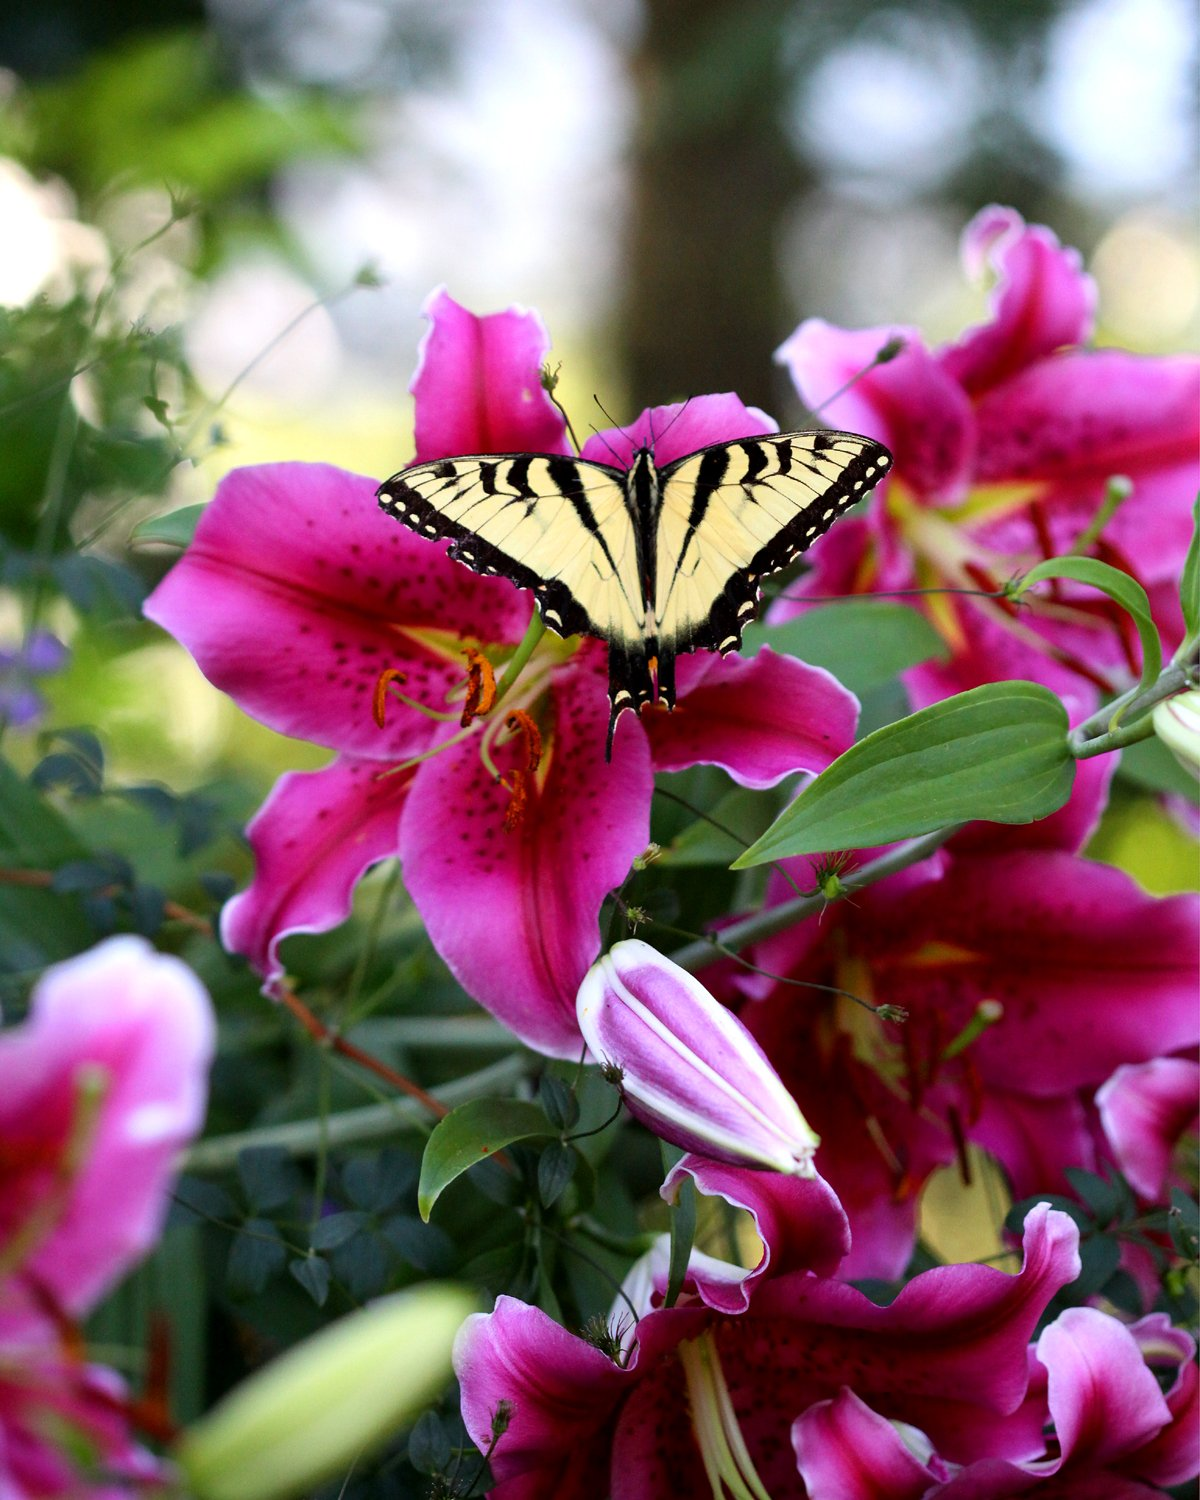 Beautiful Pictures Of Flowers And Butterflies Birds Beautiful Pictures Of Flowers And Butterflies Birds